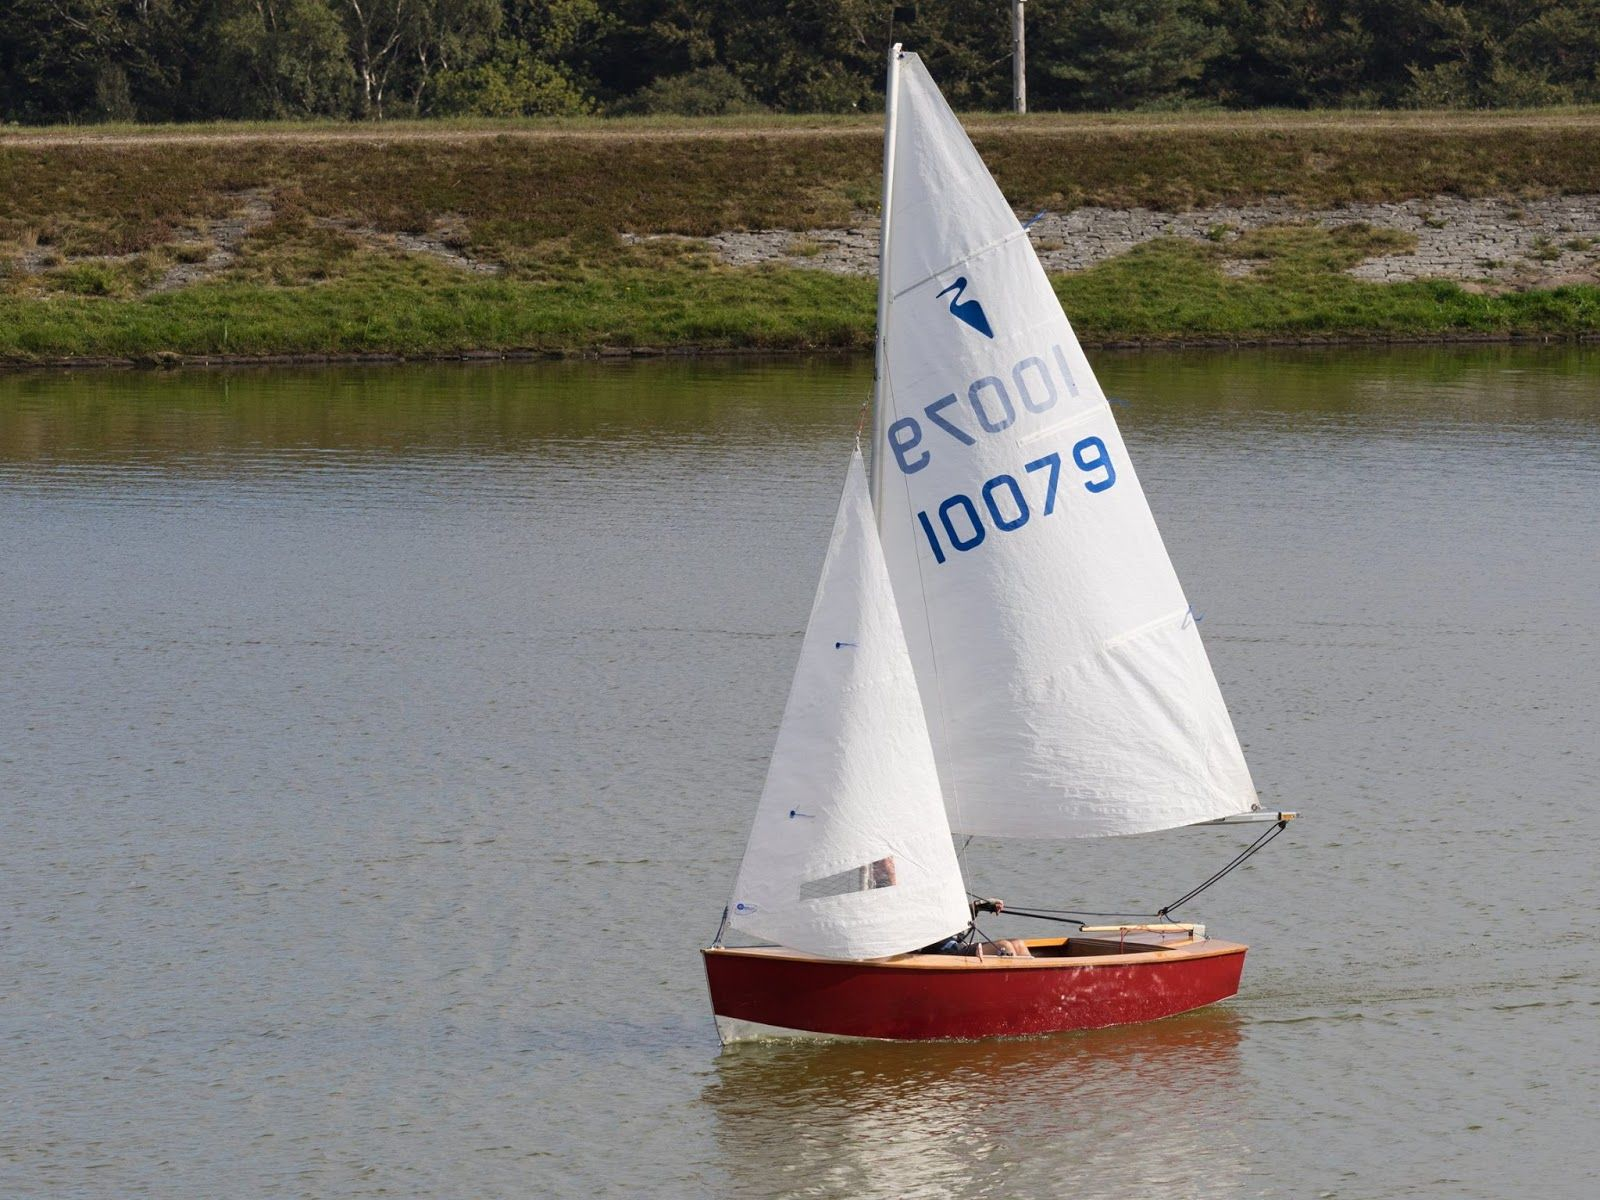 Heron sailing dinghy sail number 10079 sailing on calm lake